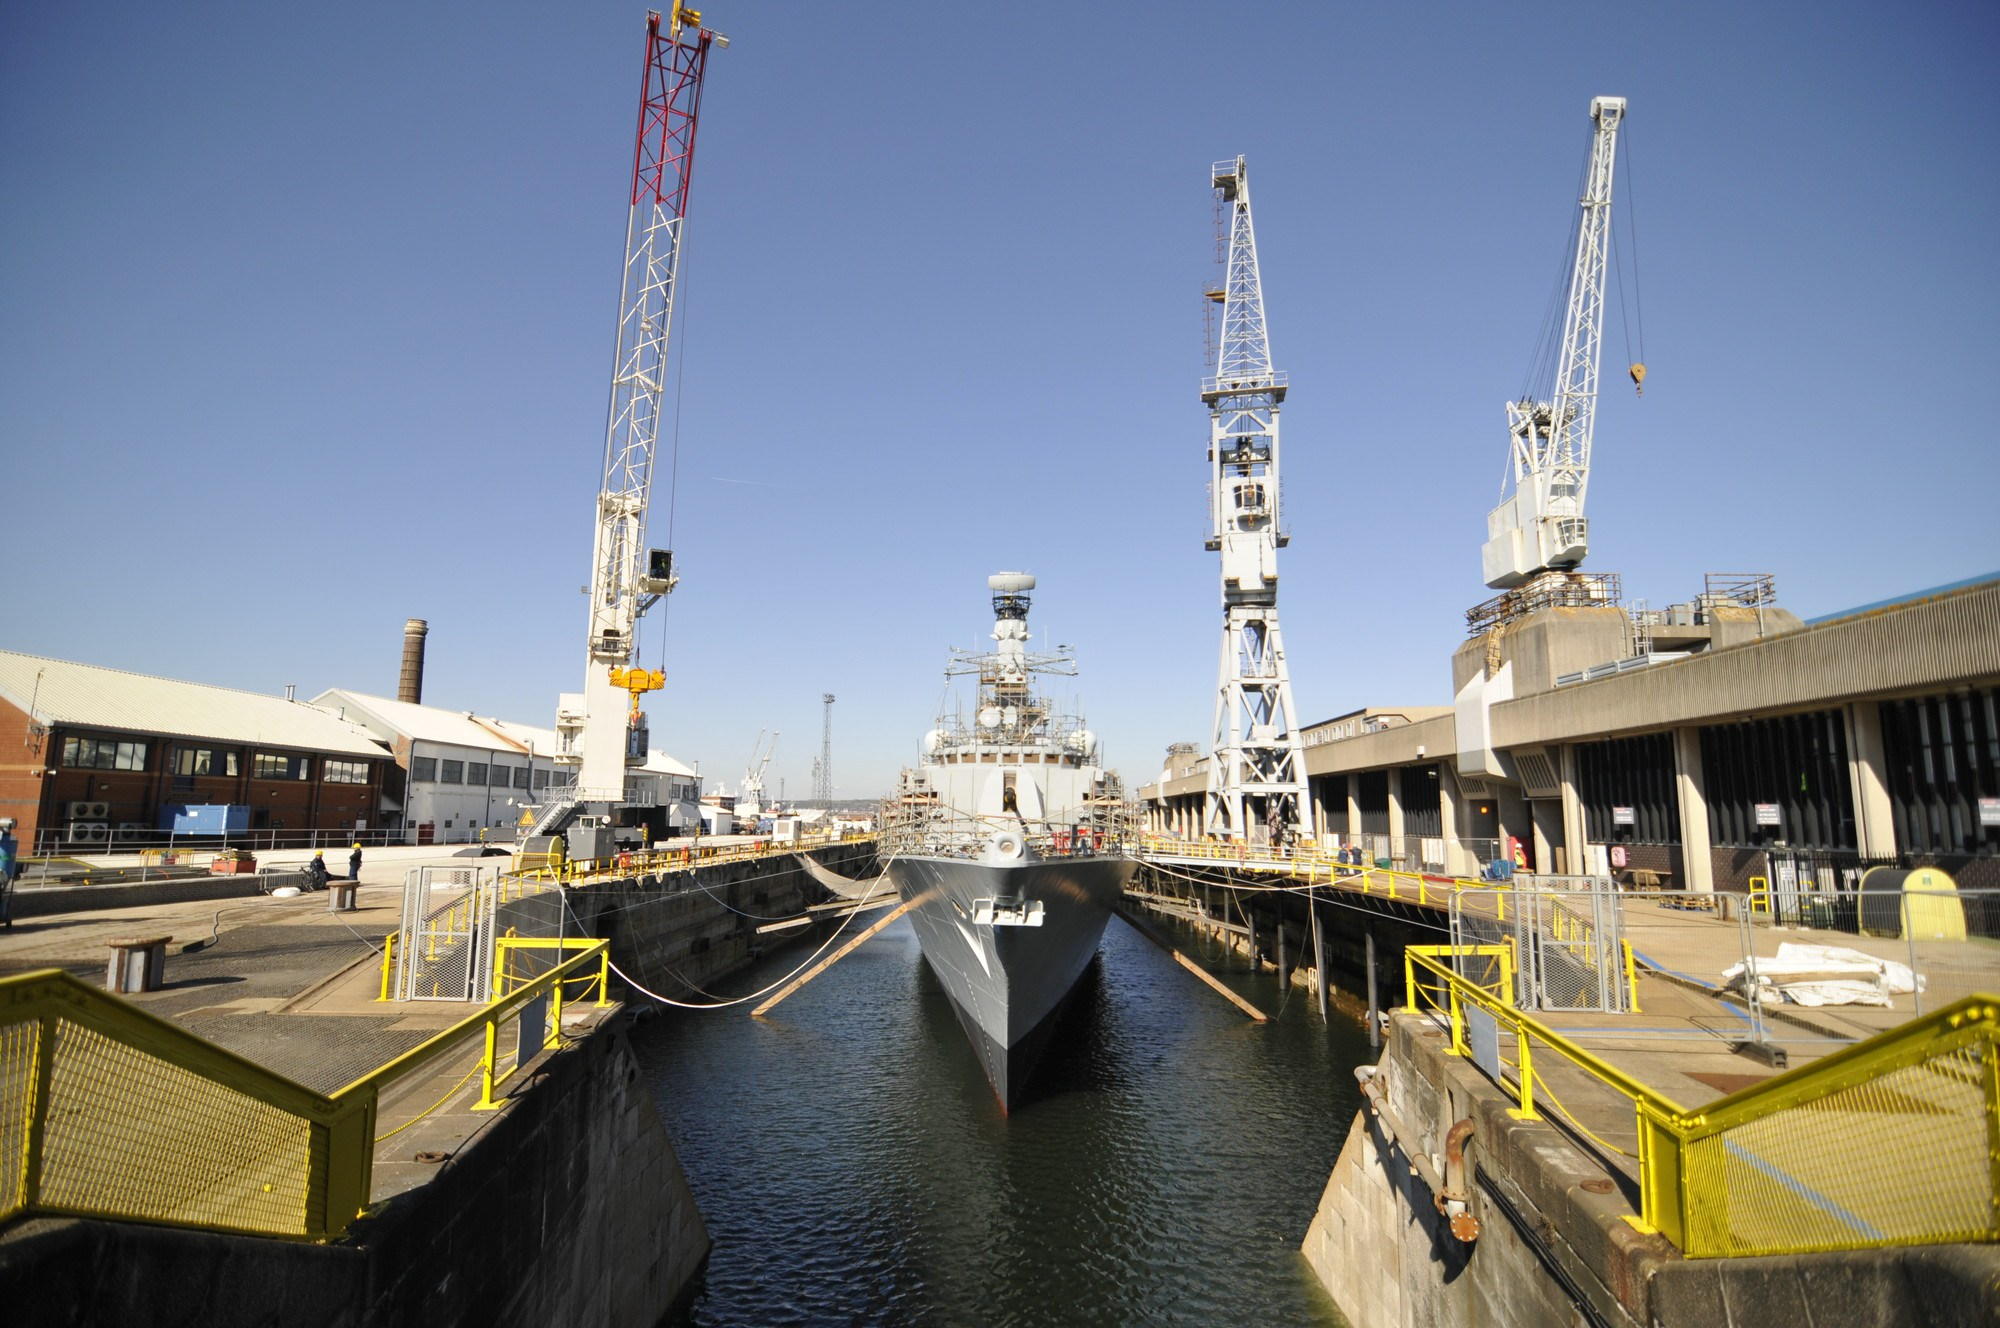 HMS Westminster completes extensive refit at Portsmouth Naval Base